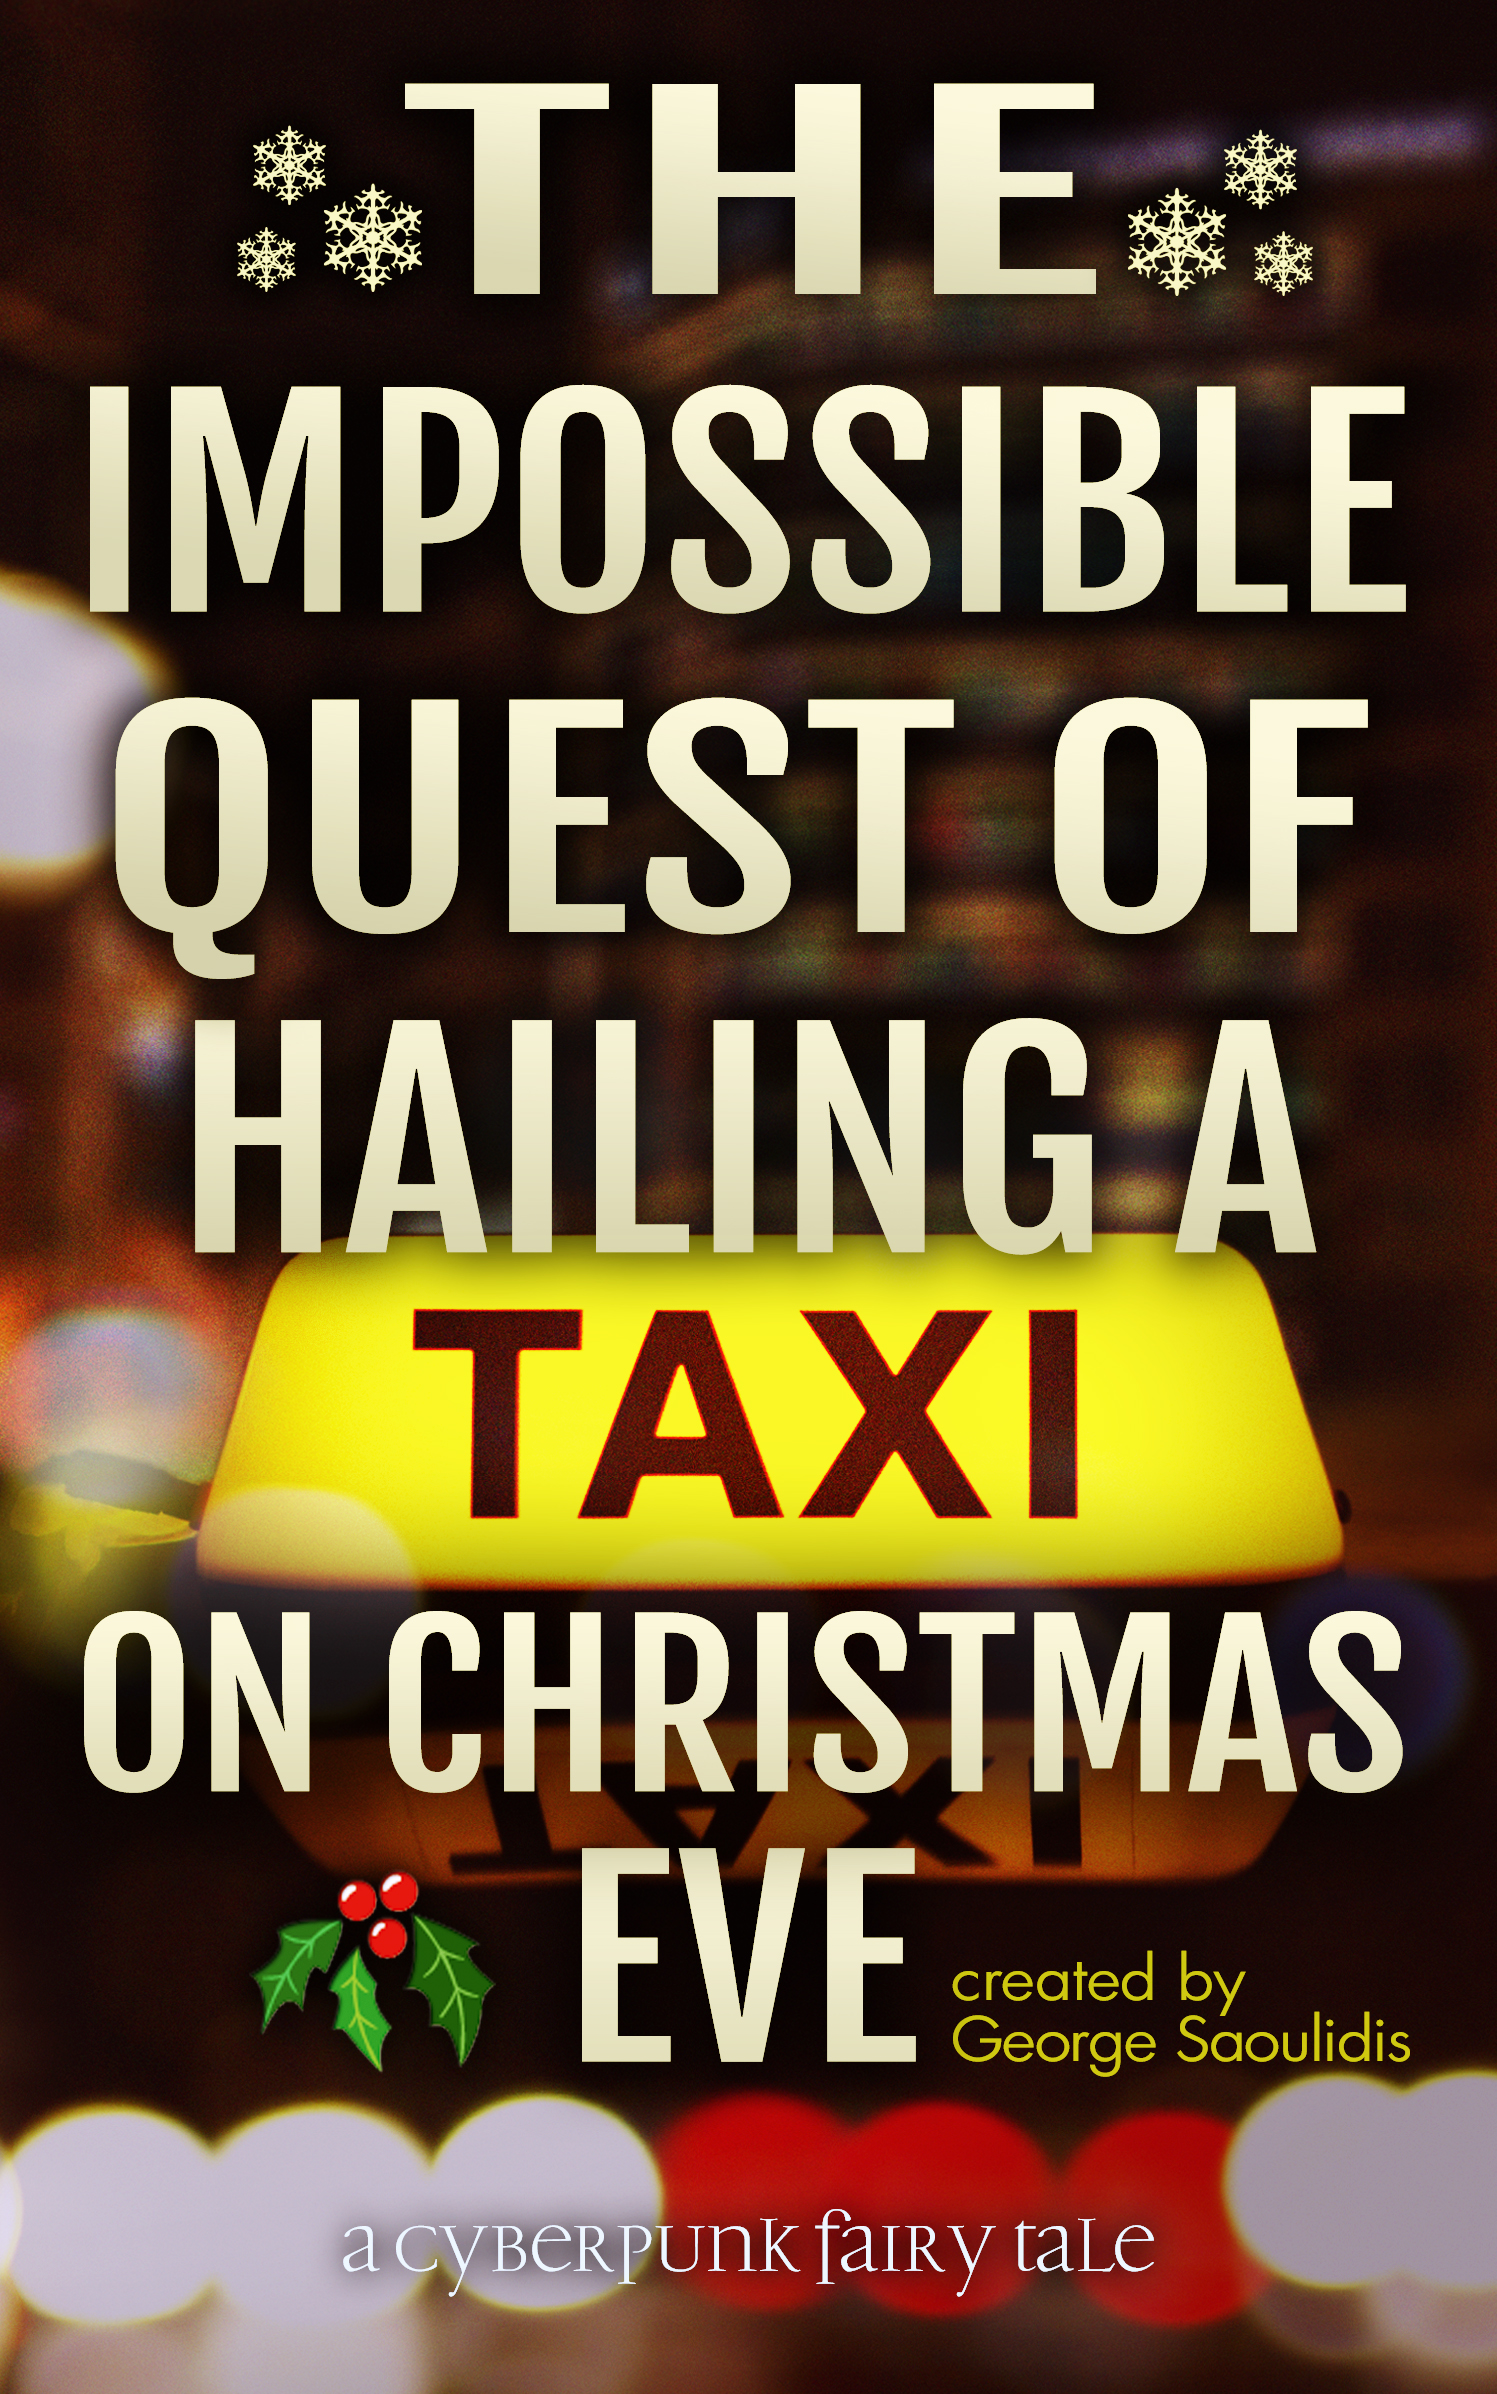 The impossible quest of hailing a taxi on christmas eve